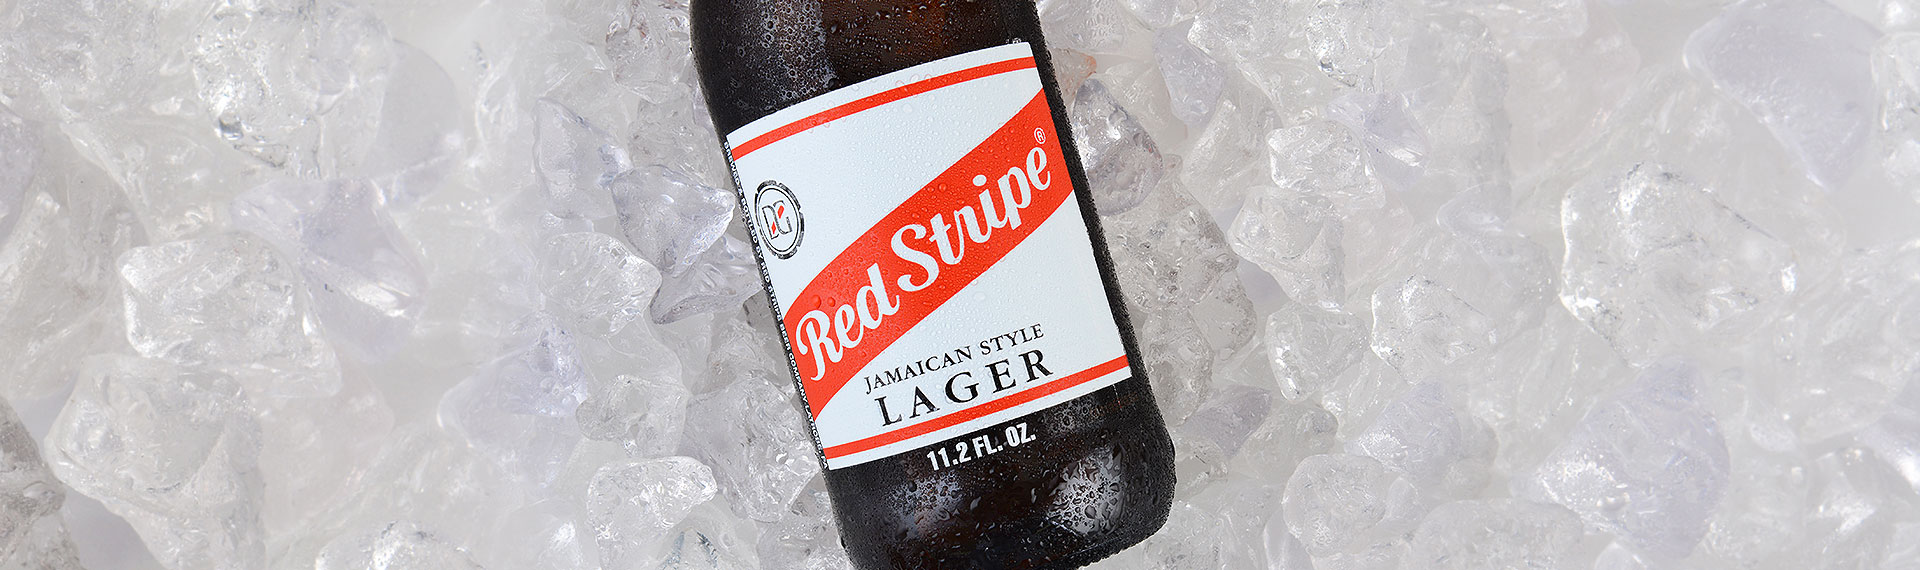 Red Stripe Jamaican Beer